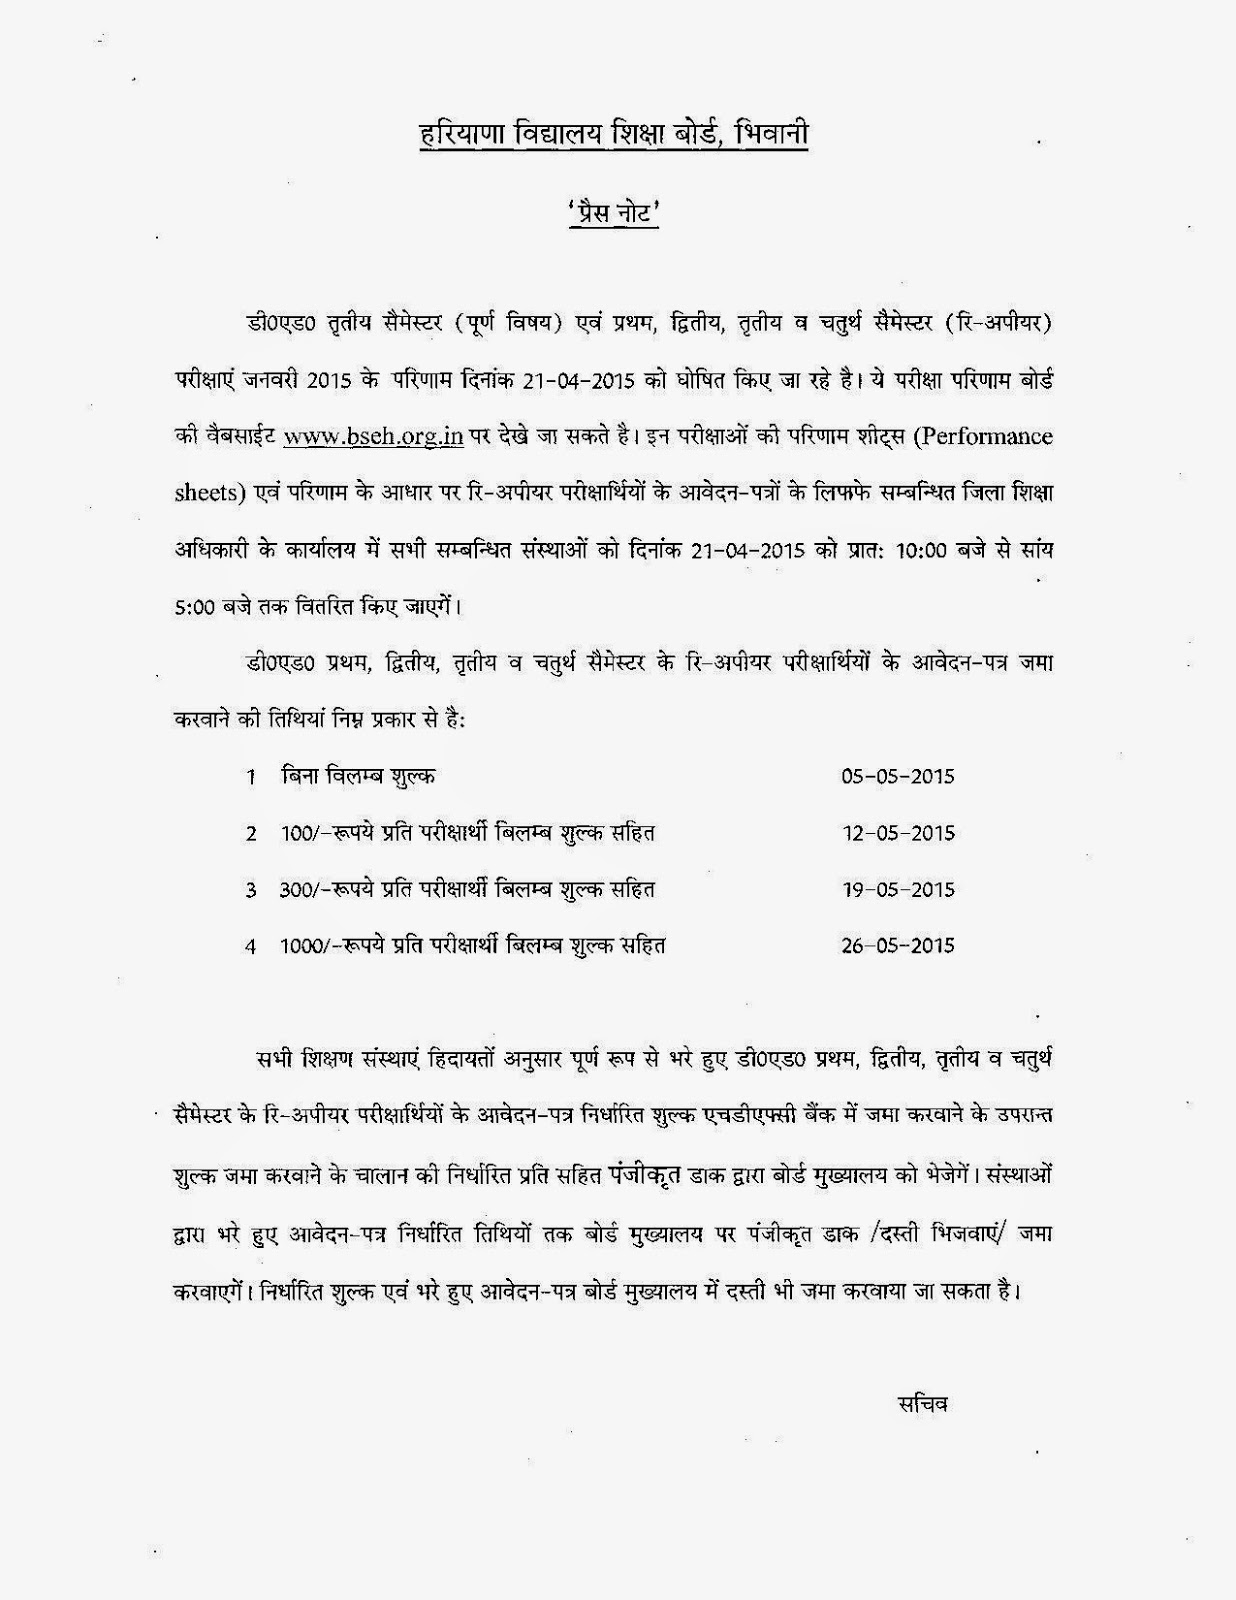 Bhiwani Board Of School Education, Haryana Has Issued A Press Note  Regarding Result Of Ded 3rd Semester (all Subjects ) And Reappear (1st,  2nd,